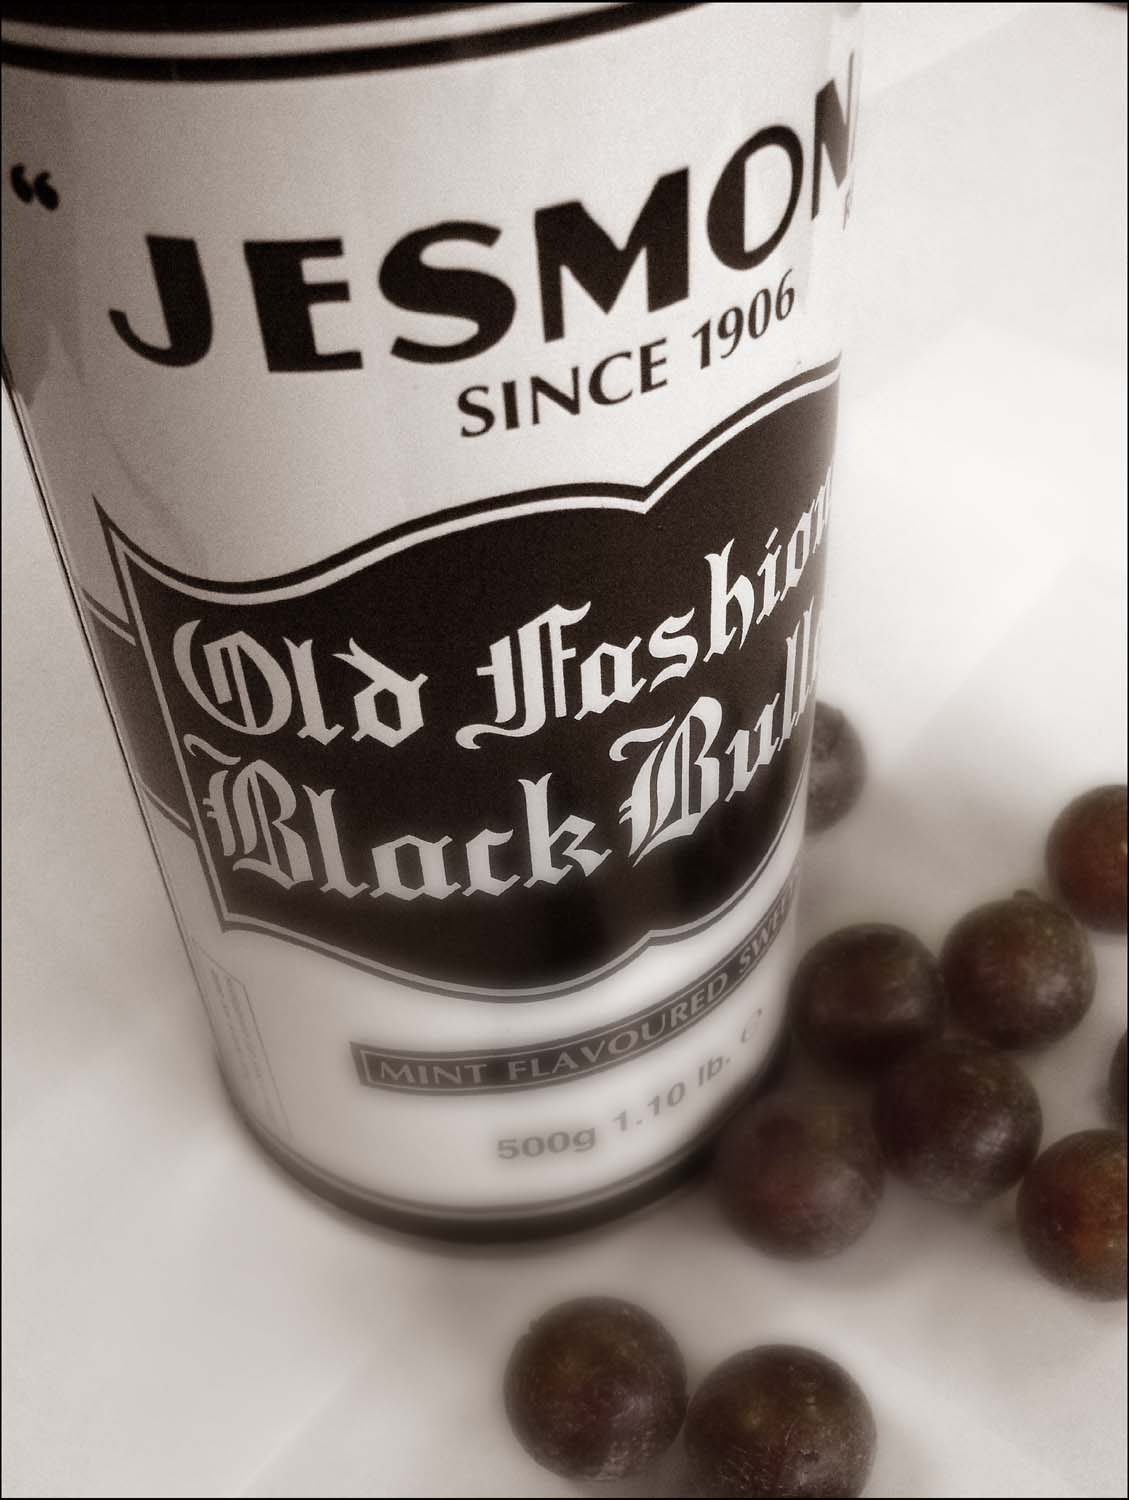 Black,Bullets,Jesmona,Jesmond,Newcastle,peppermint,sweets,confectionary,tin,old,1906,balls,365days,toffees,toffee,confection,candy,uncle,joe,joes,mint,500g,flavour,flavoured,B/W,white,mono,monochrome,stillife,stilllife,still,life,hotpix!